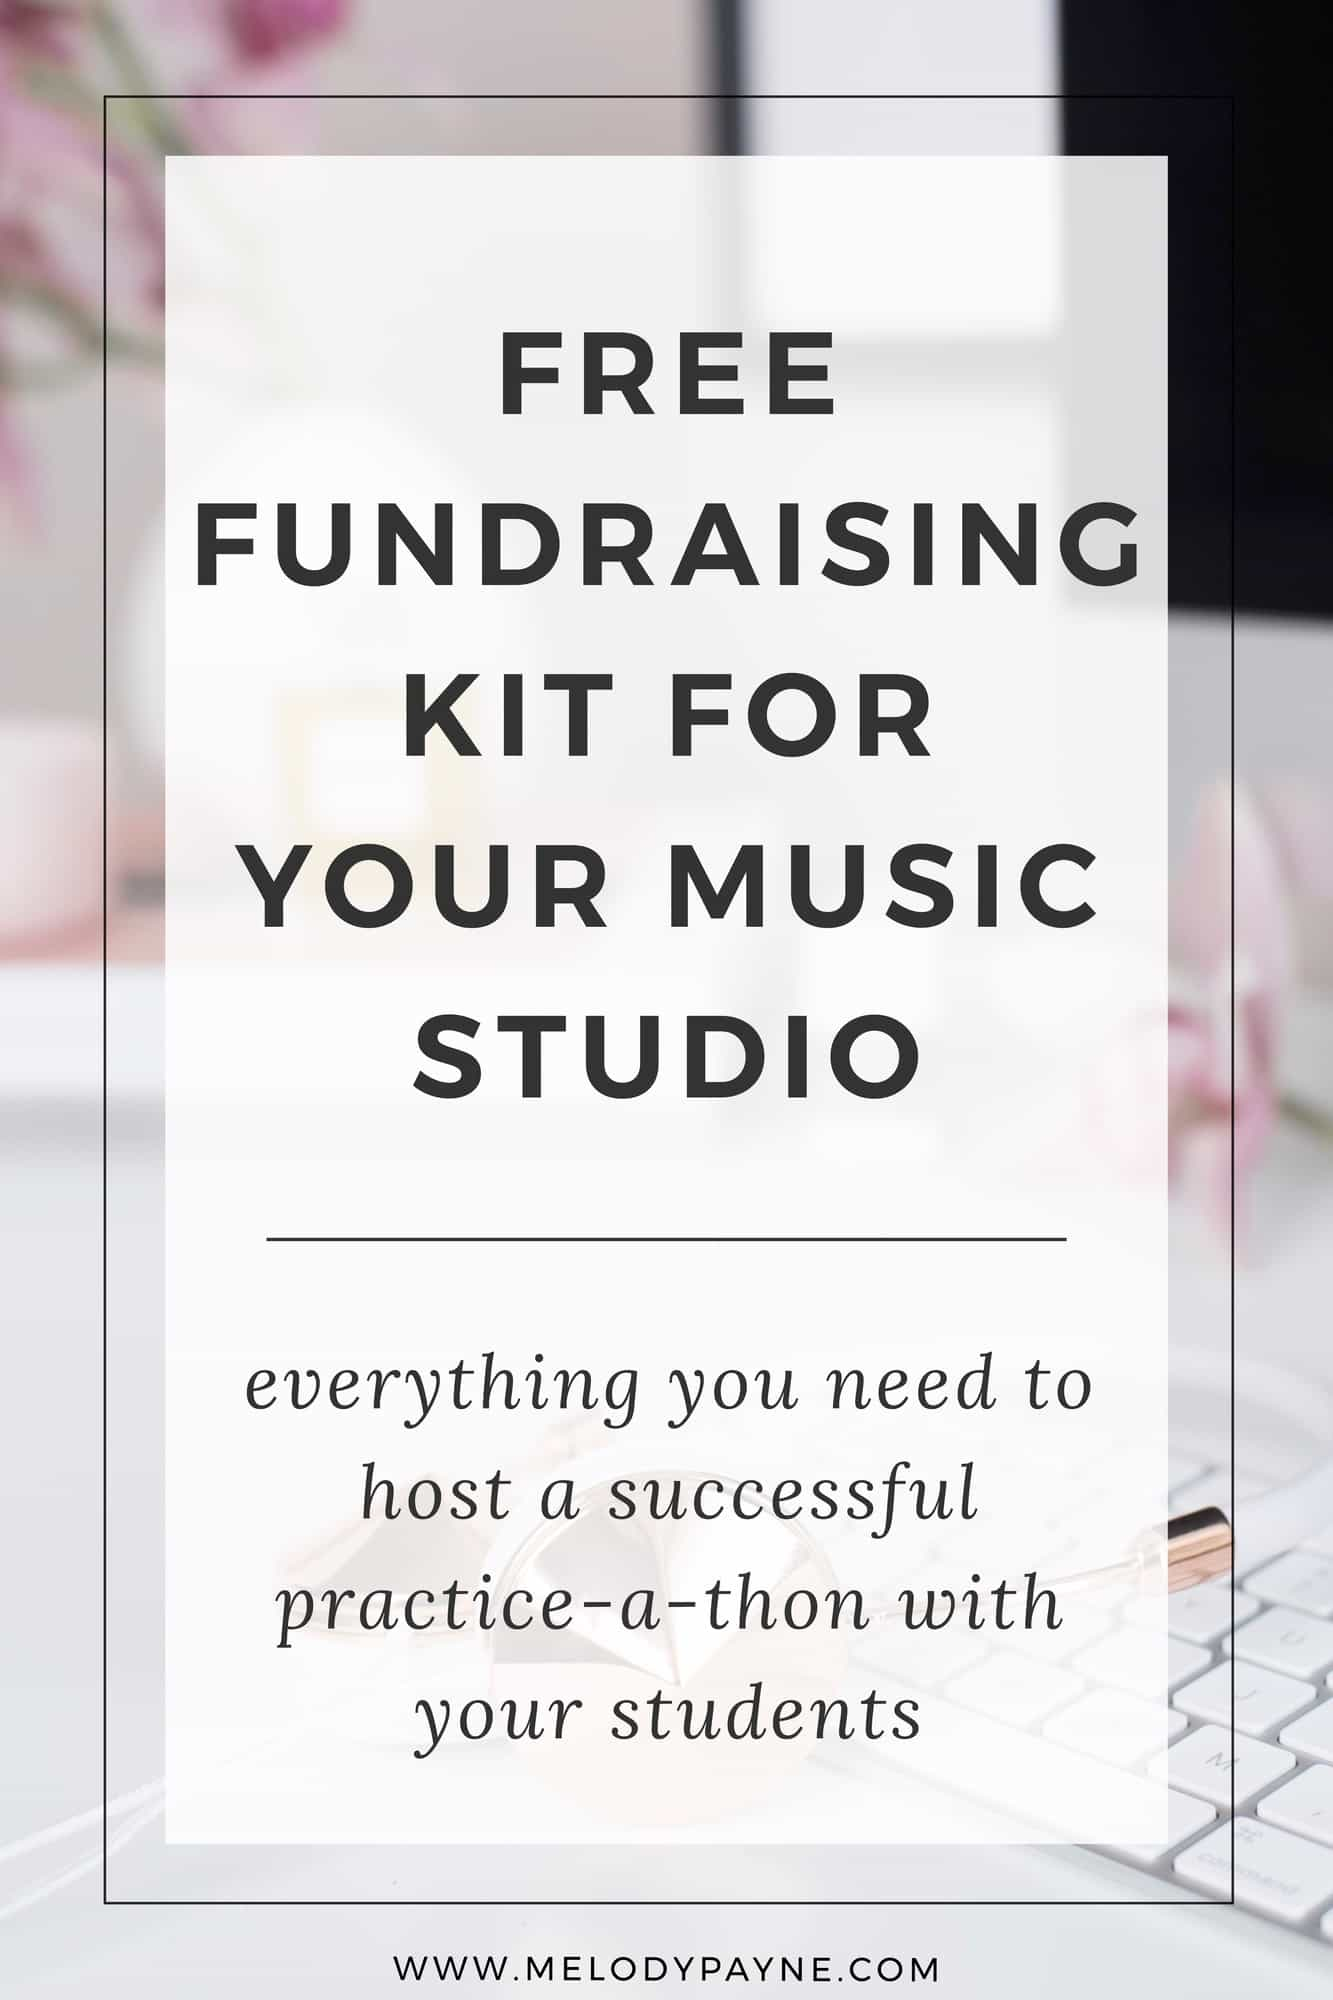 Free Practice-A-Thon Fundraising Kit for Your Music Studio   Learn more at melodypayne.com!